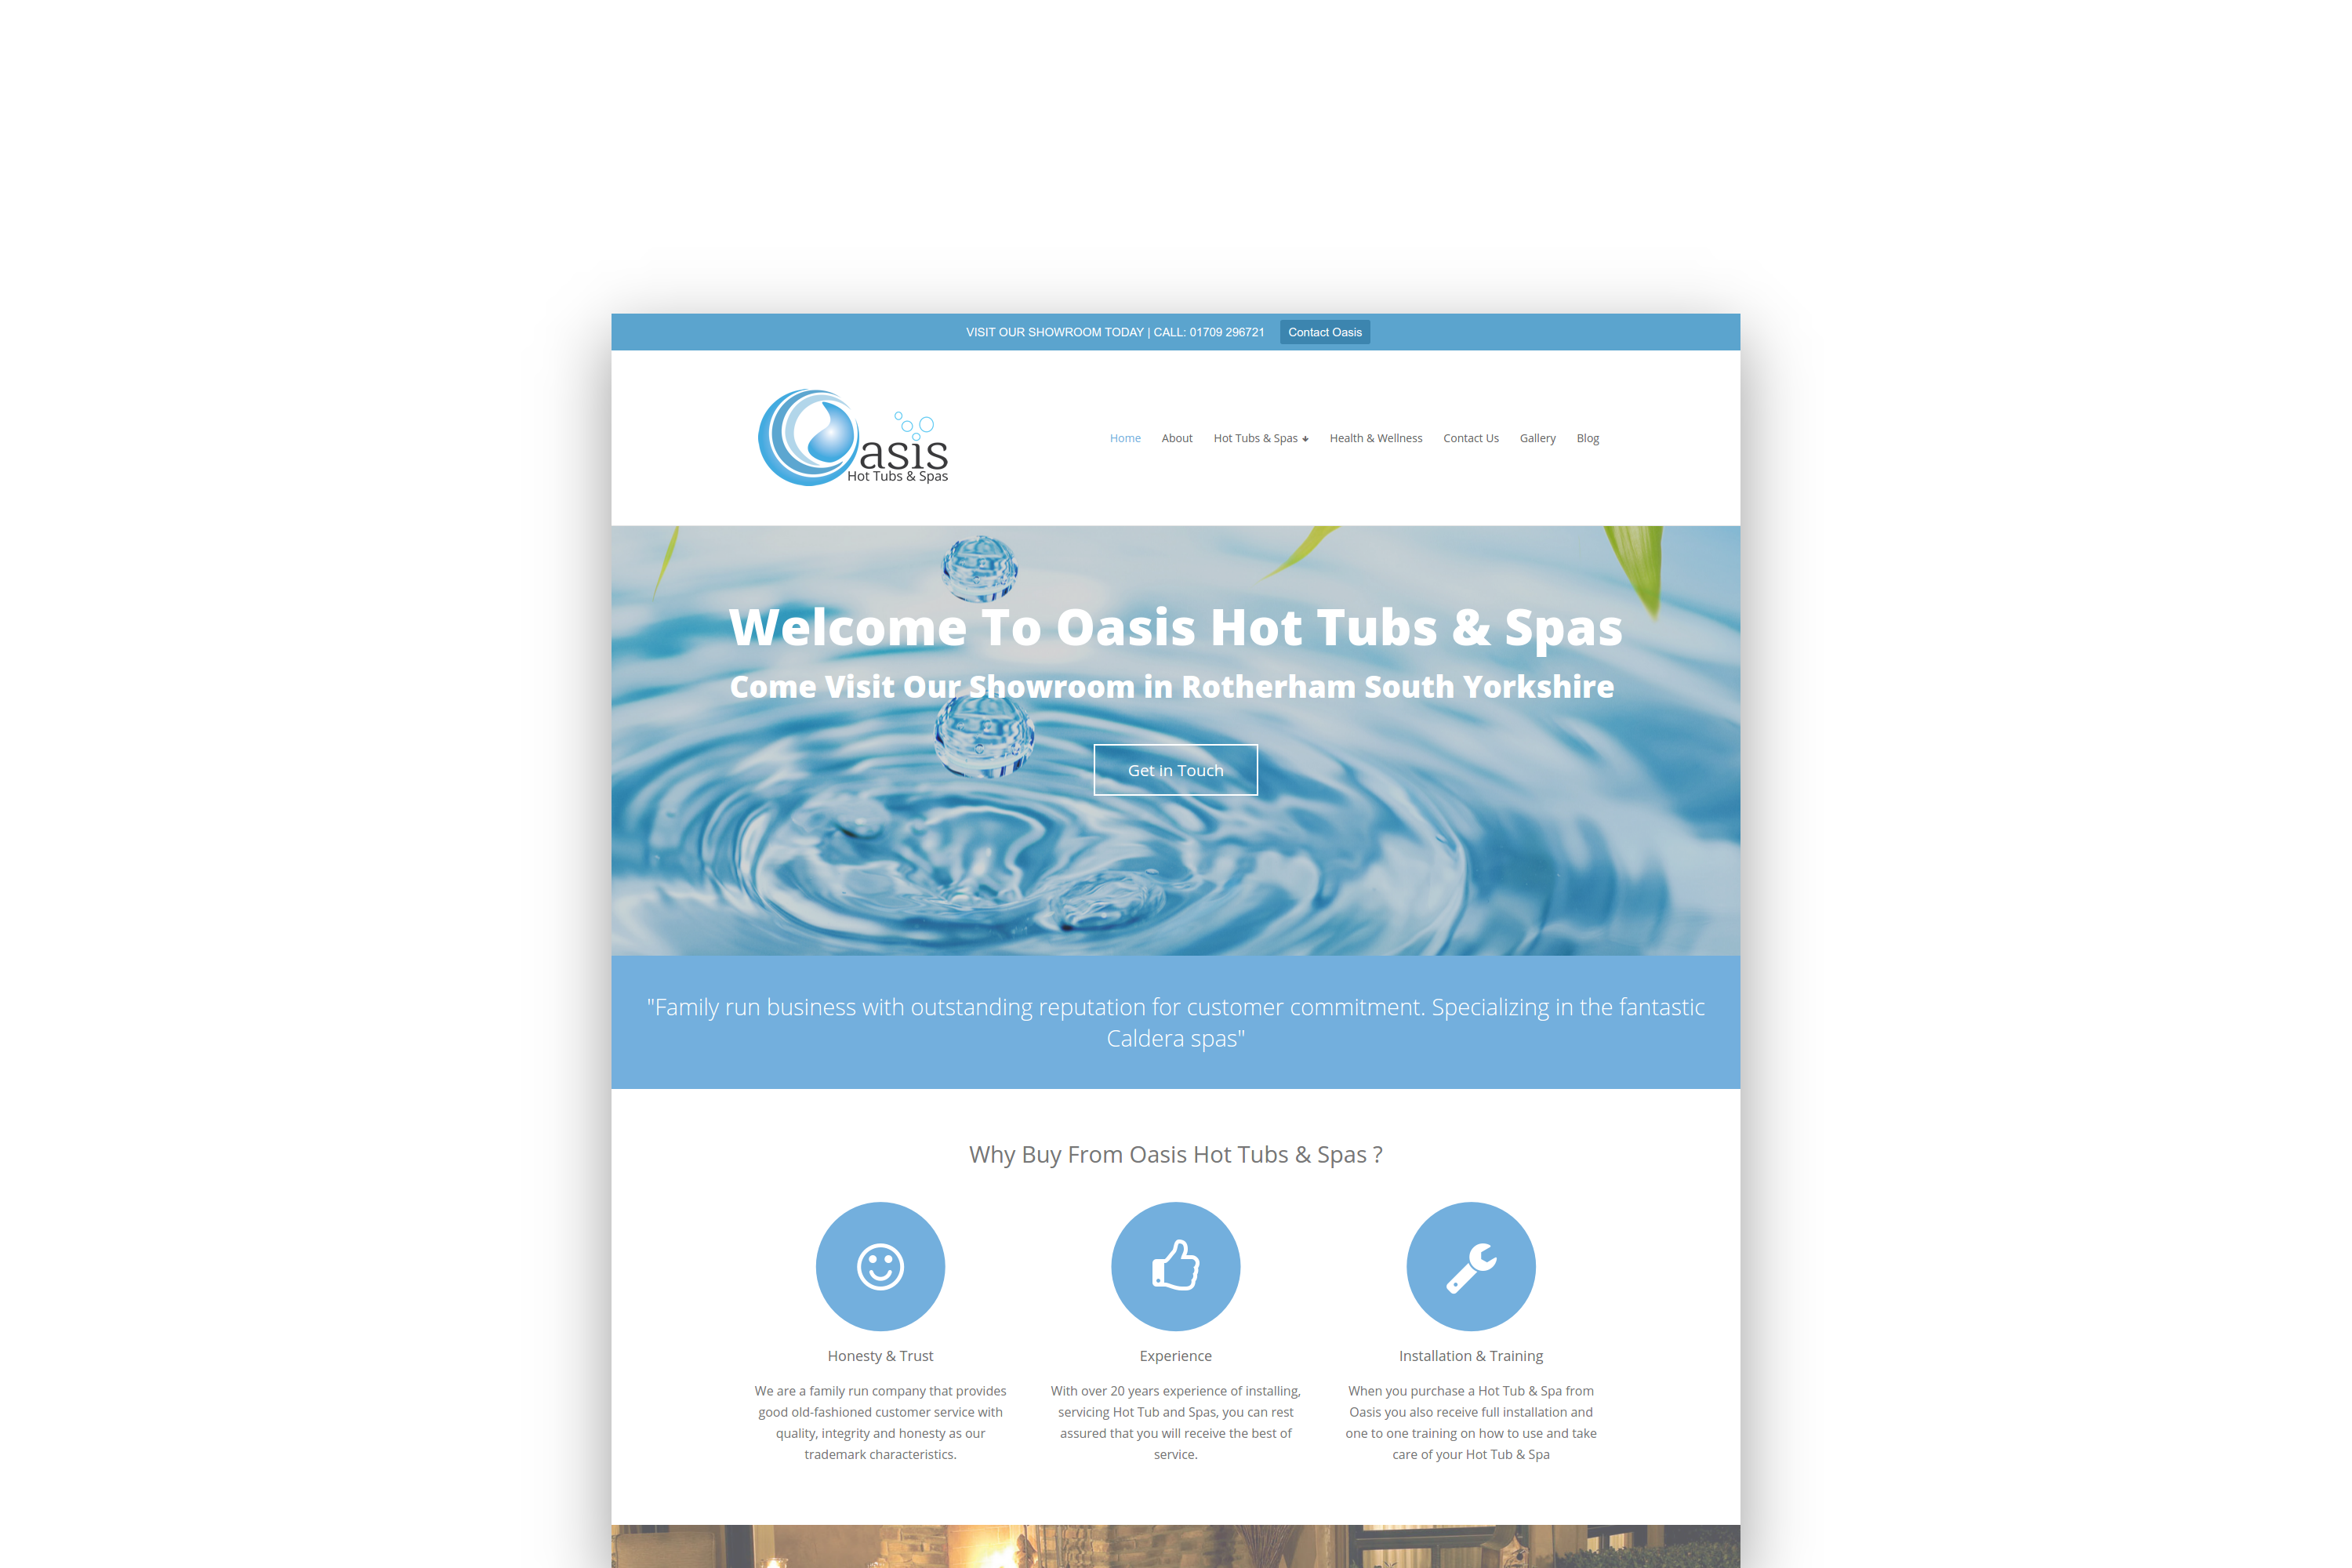 Oasis Hot Tubs And Spas Website DesignOasis Hot Tubs And Spas Website Design